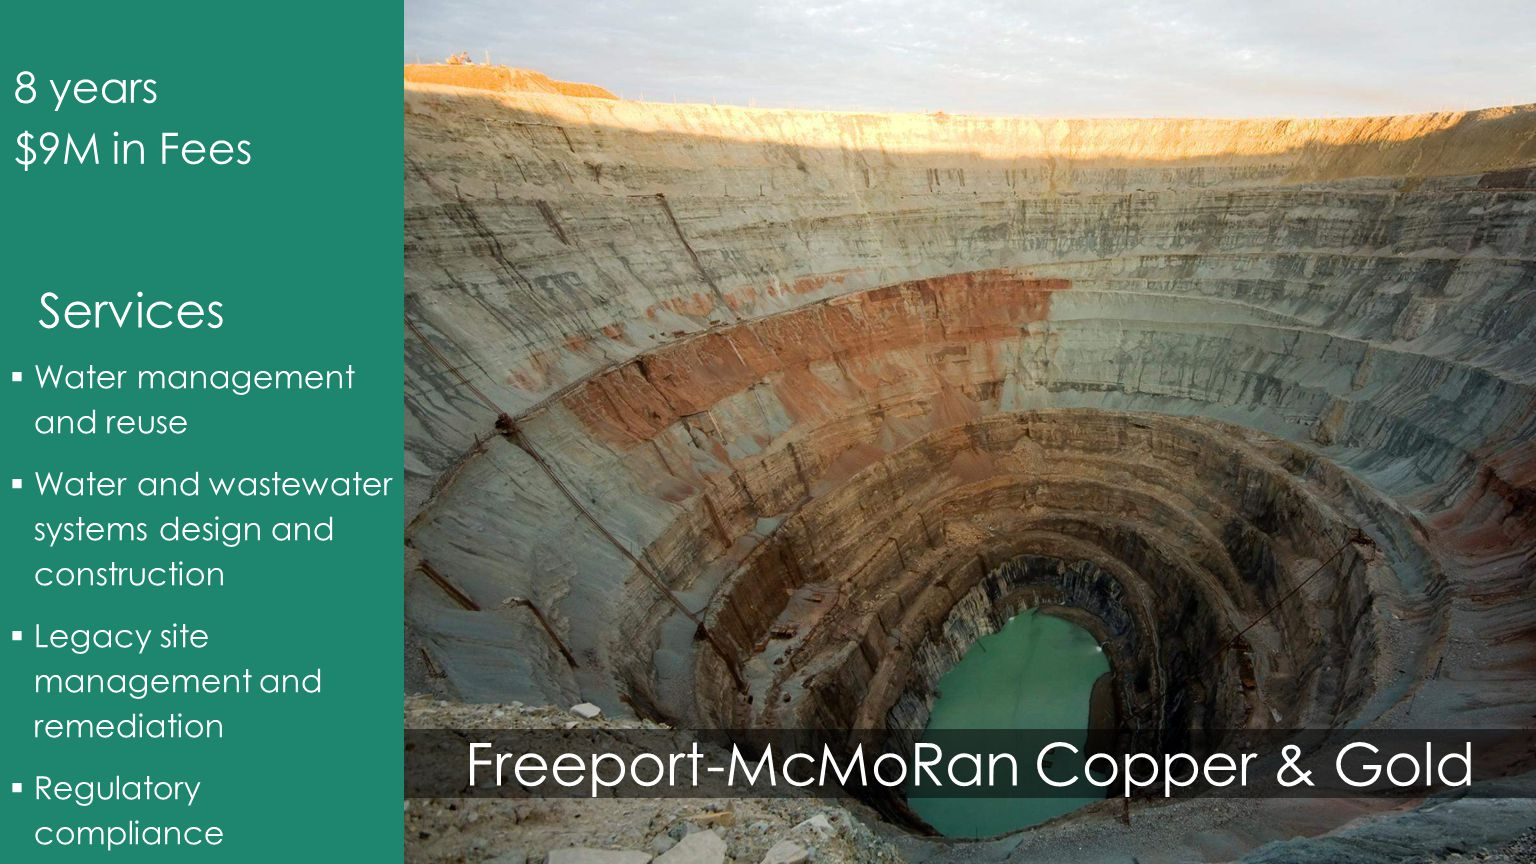 Freeport-McMoRan Copper & Gold  Water management and reuse  Water and wastewater systems design and construction  Legacy site management and remediation  Regulatory compliance 8 years $9M in Fees Services